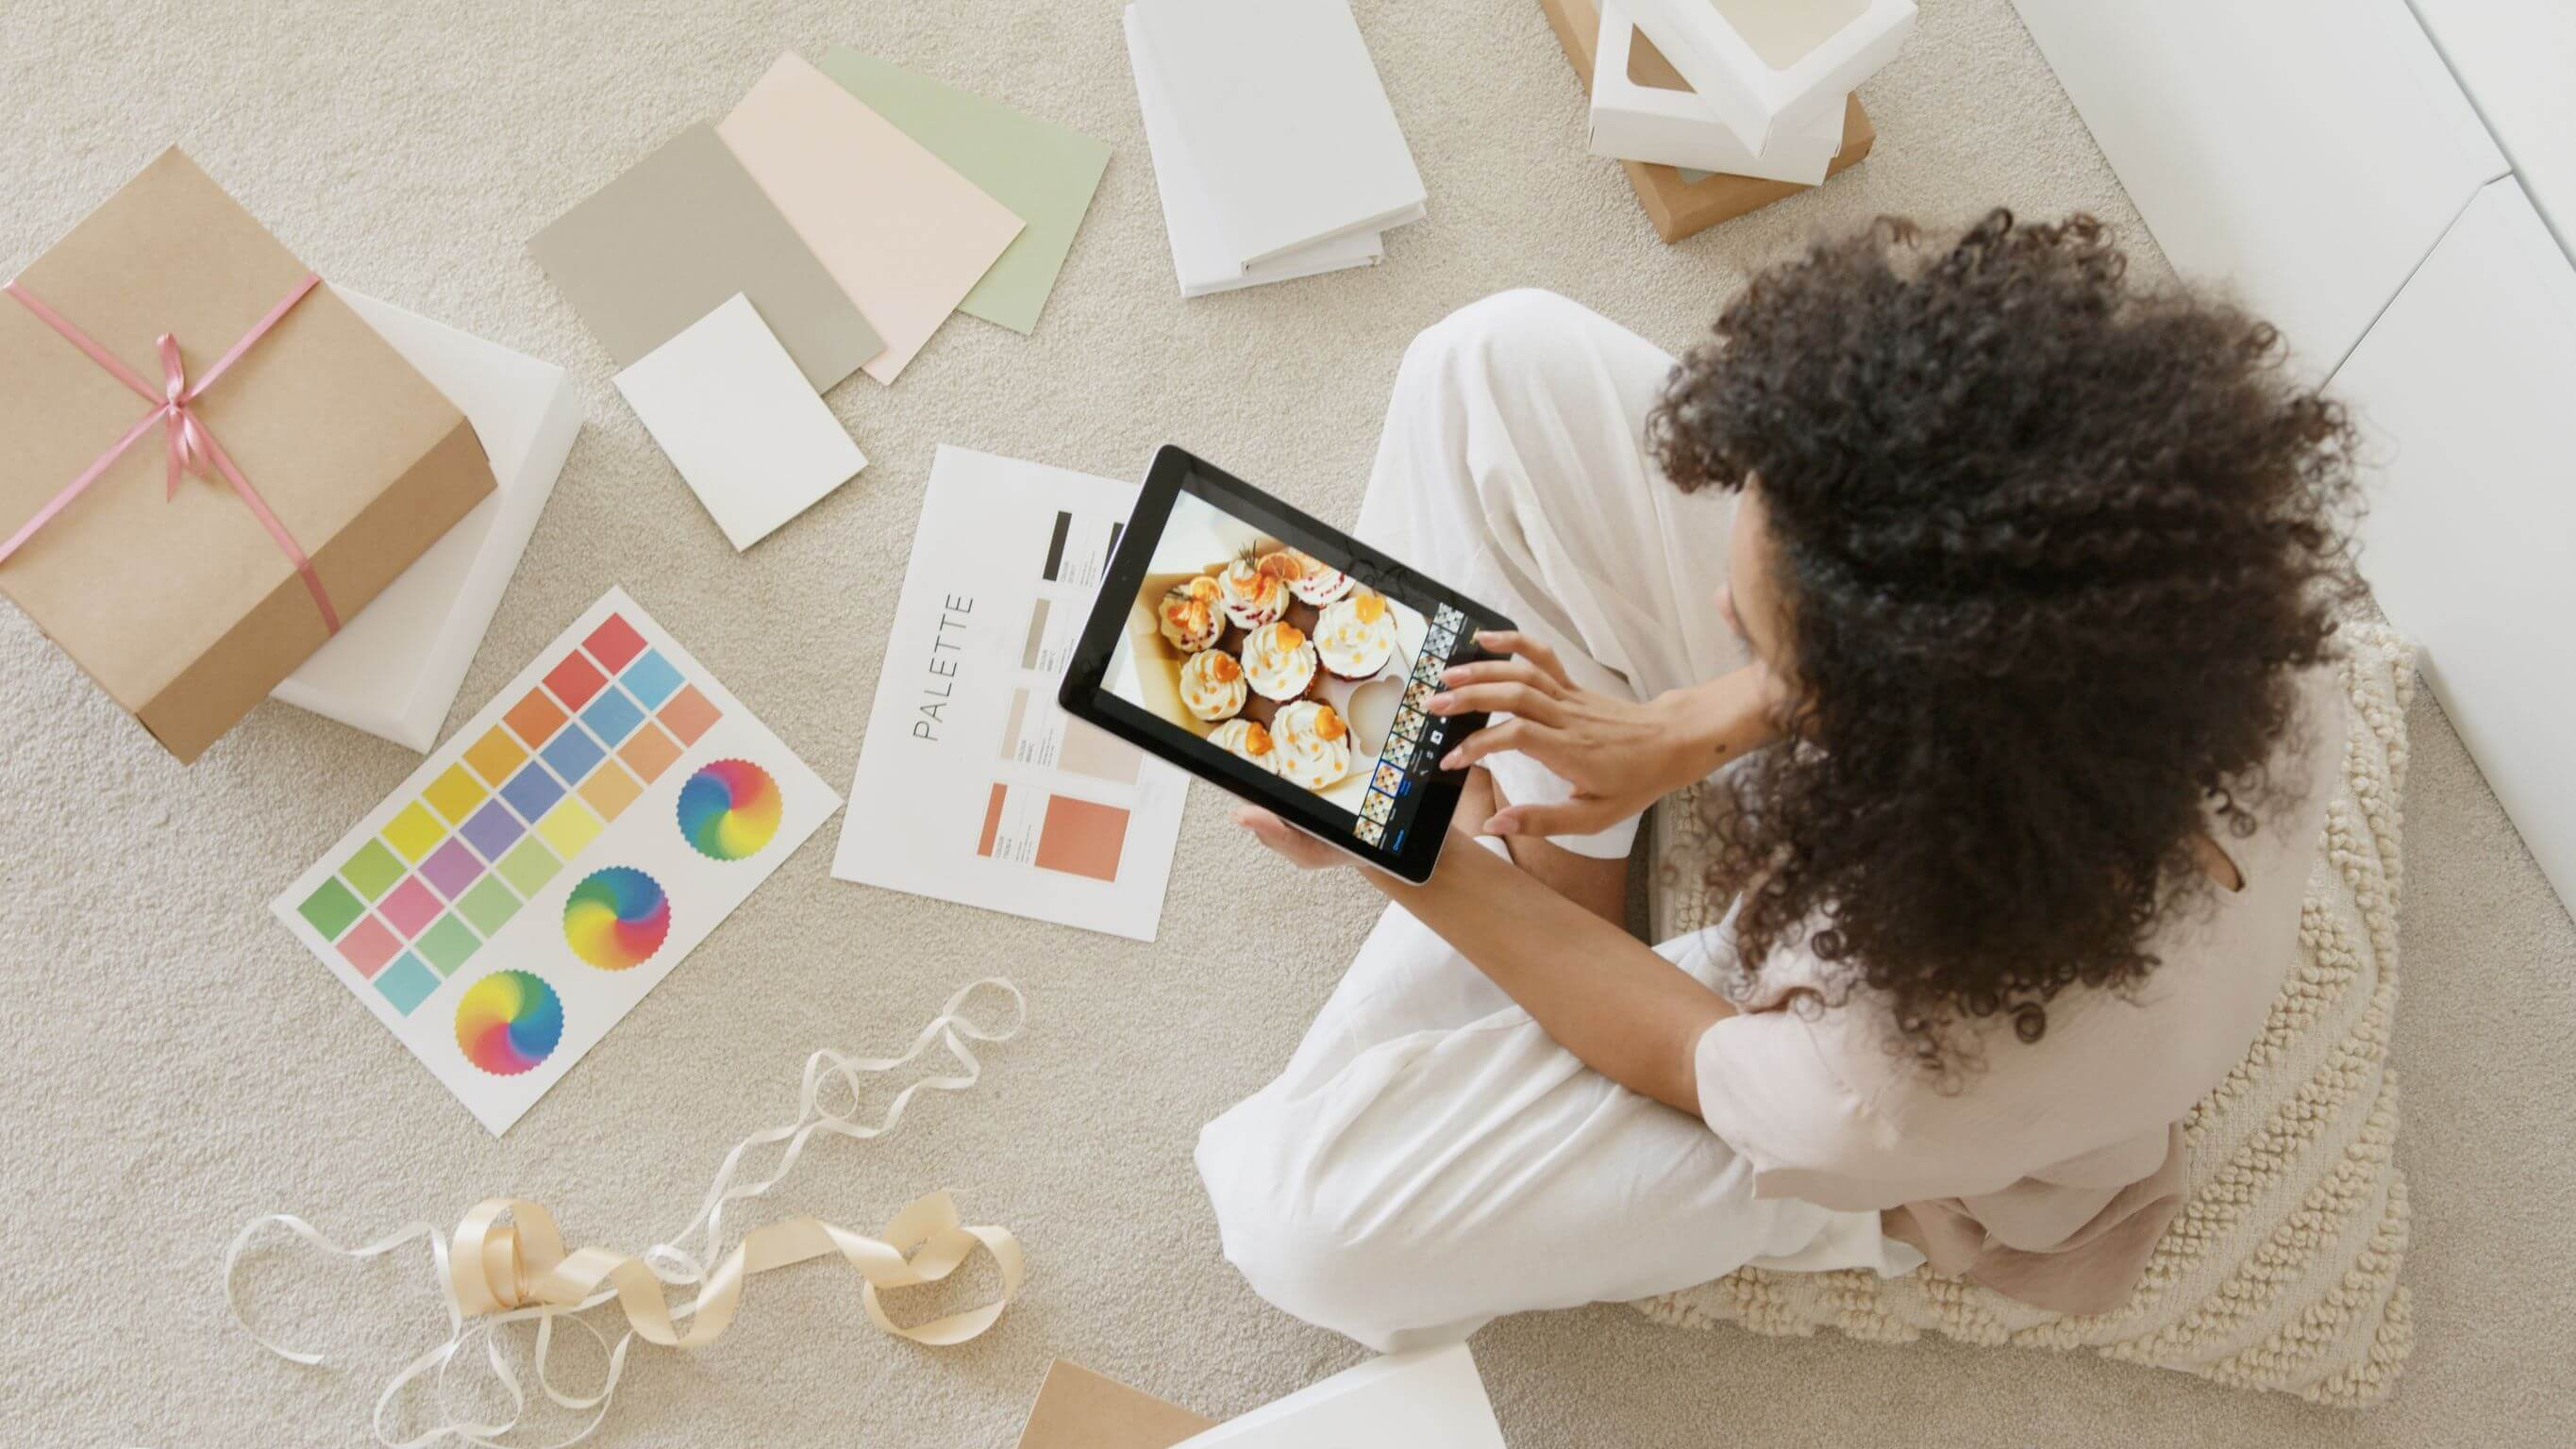 Ecommerce 101: Boost Ecommerce Sales with These 9 Tactics